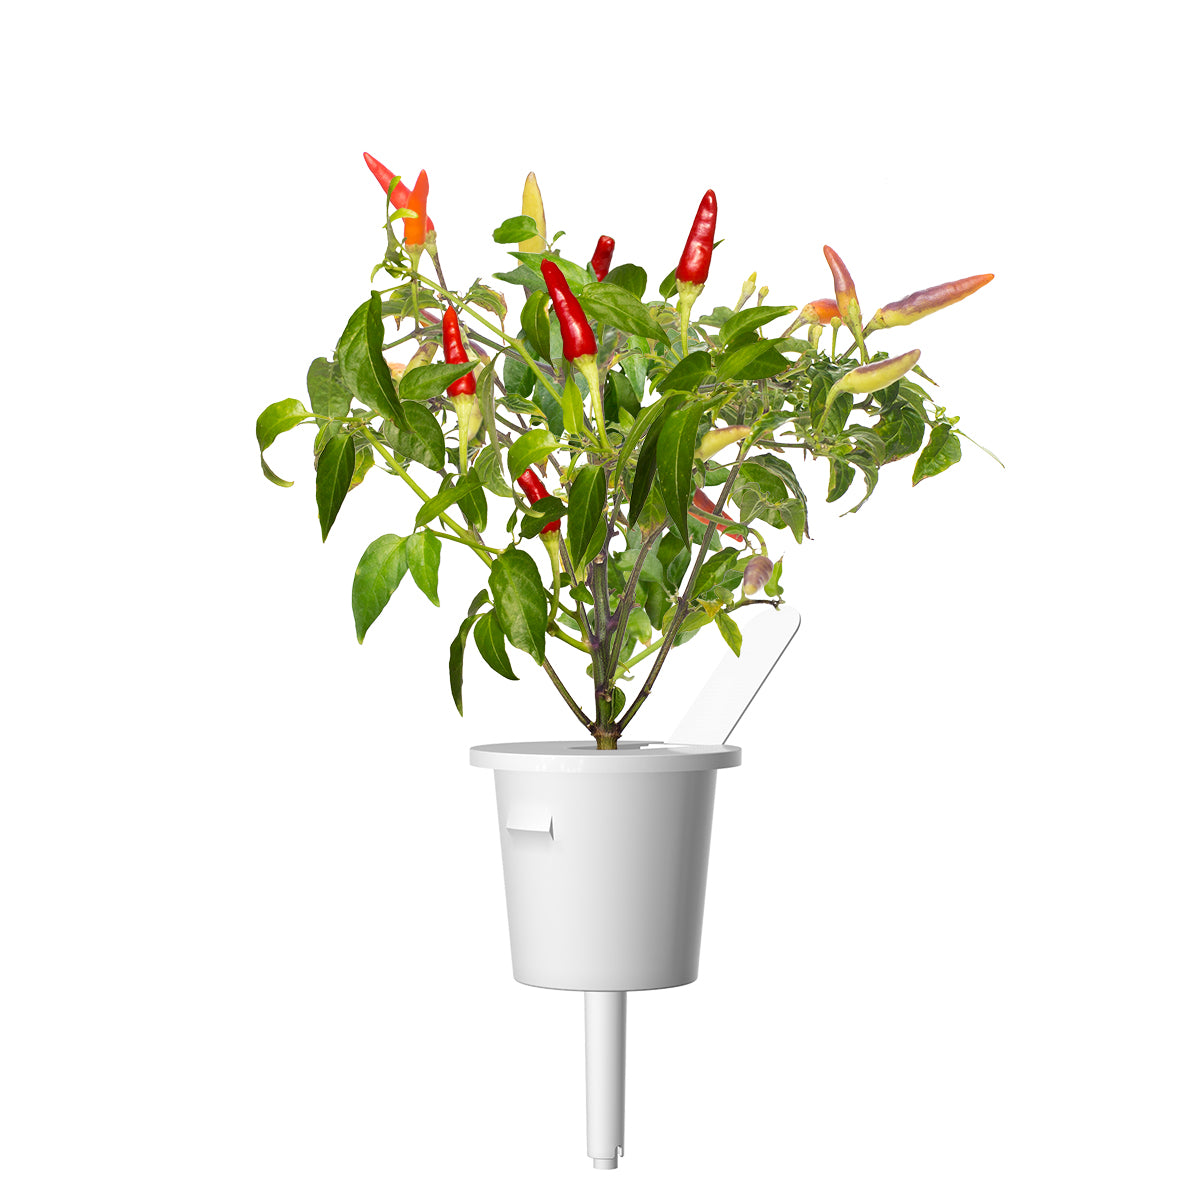 Red Hot Chili pepper plant pod - Click & Grow indoor herb garden - Grow Chili Pepper at home with an indoor garden